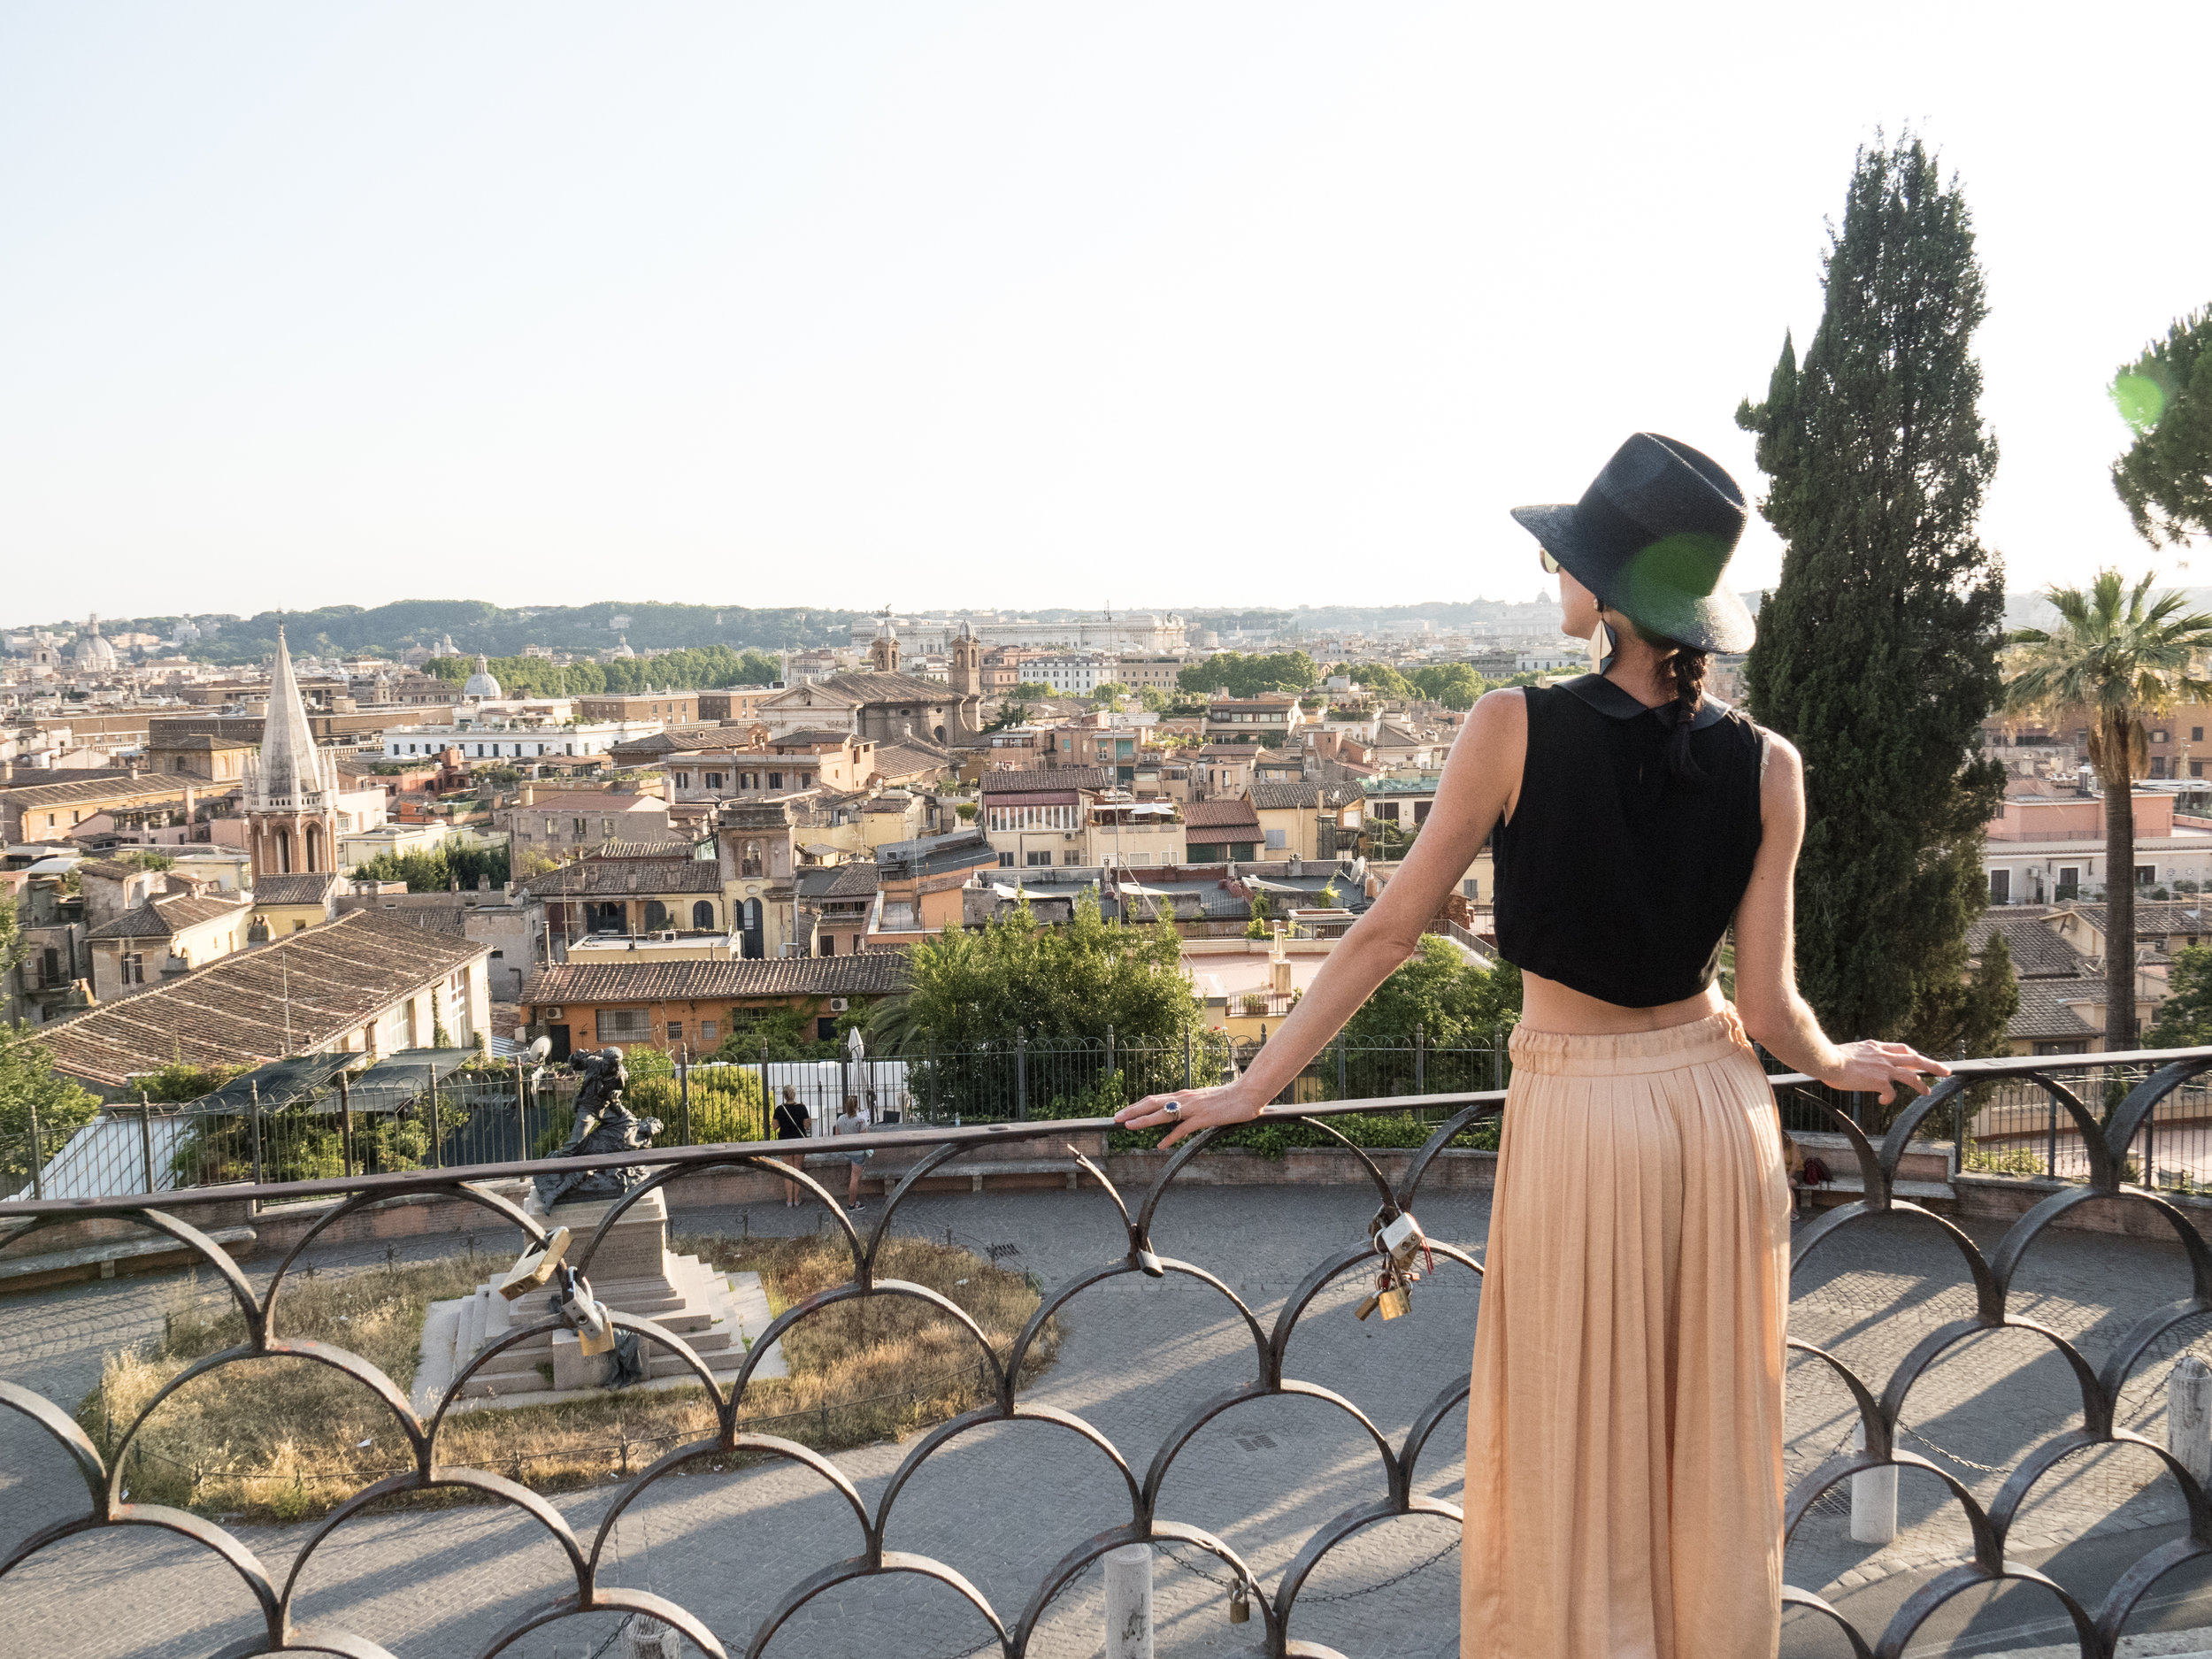 Rome-facing the view.jpg